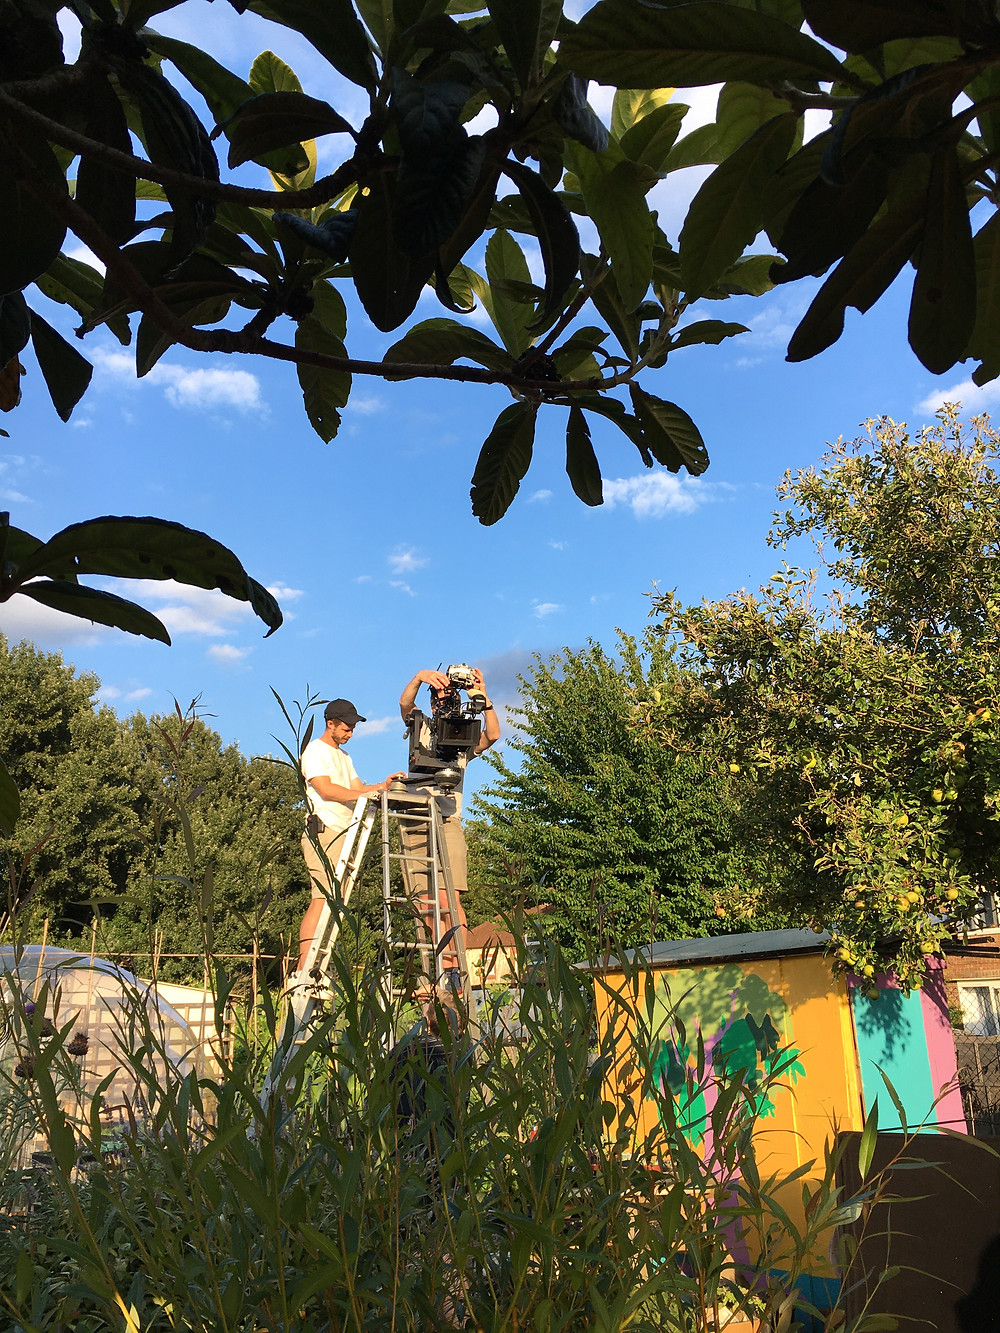 Two camera men stand either side at the top of a ladder, adjusting a film camera ready for filming. The dark leaves of the loquat in the foreground provide a dramatic contrast against the bright blue sky and lush green vegetation.